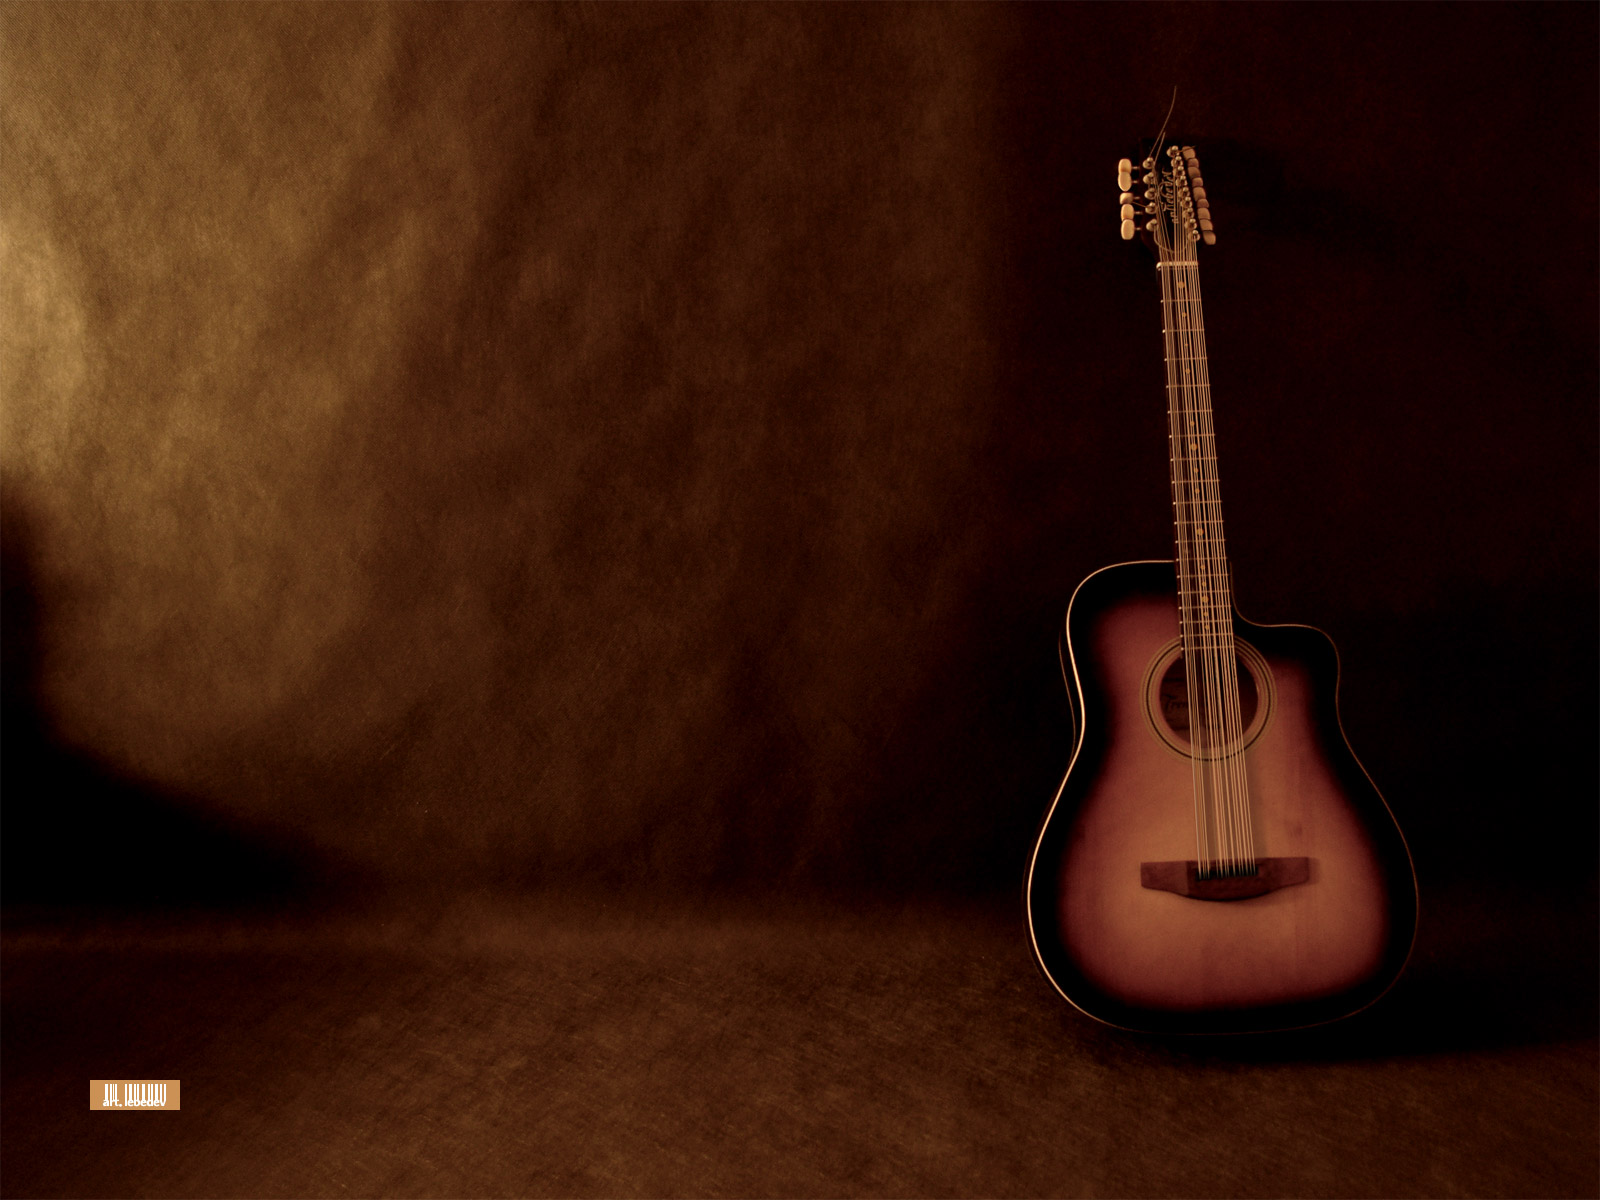 Guitar Wallpaper HD Desktop